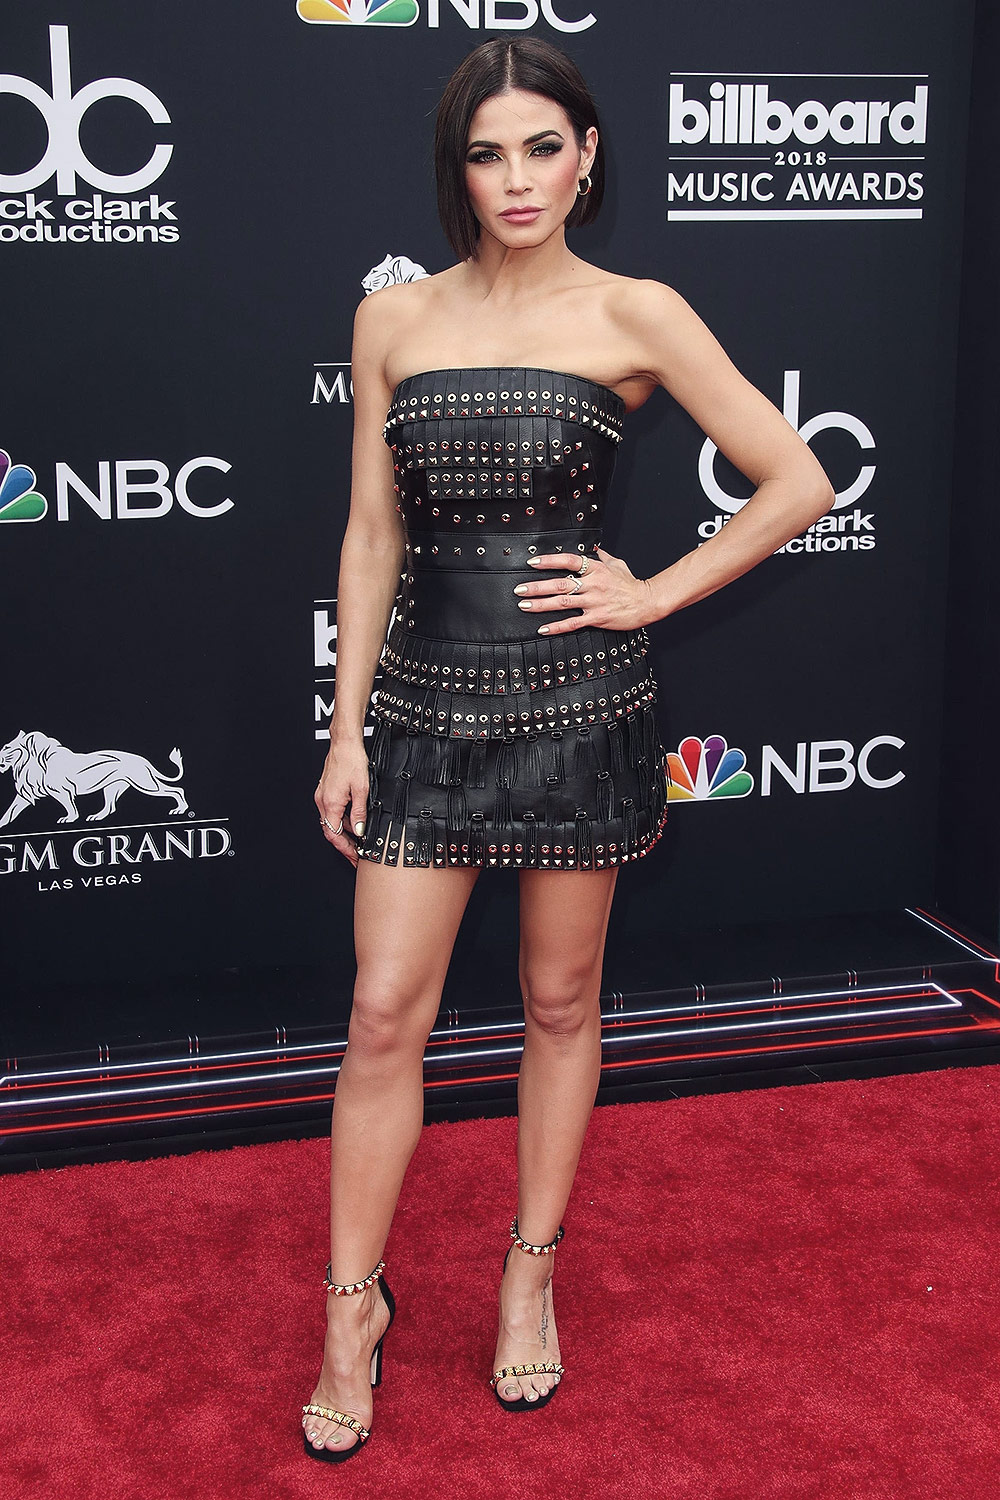 Jenna Dewan attends 2018 Billboard Music Awards